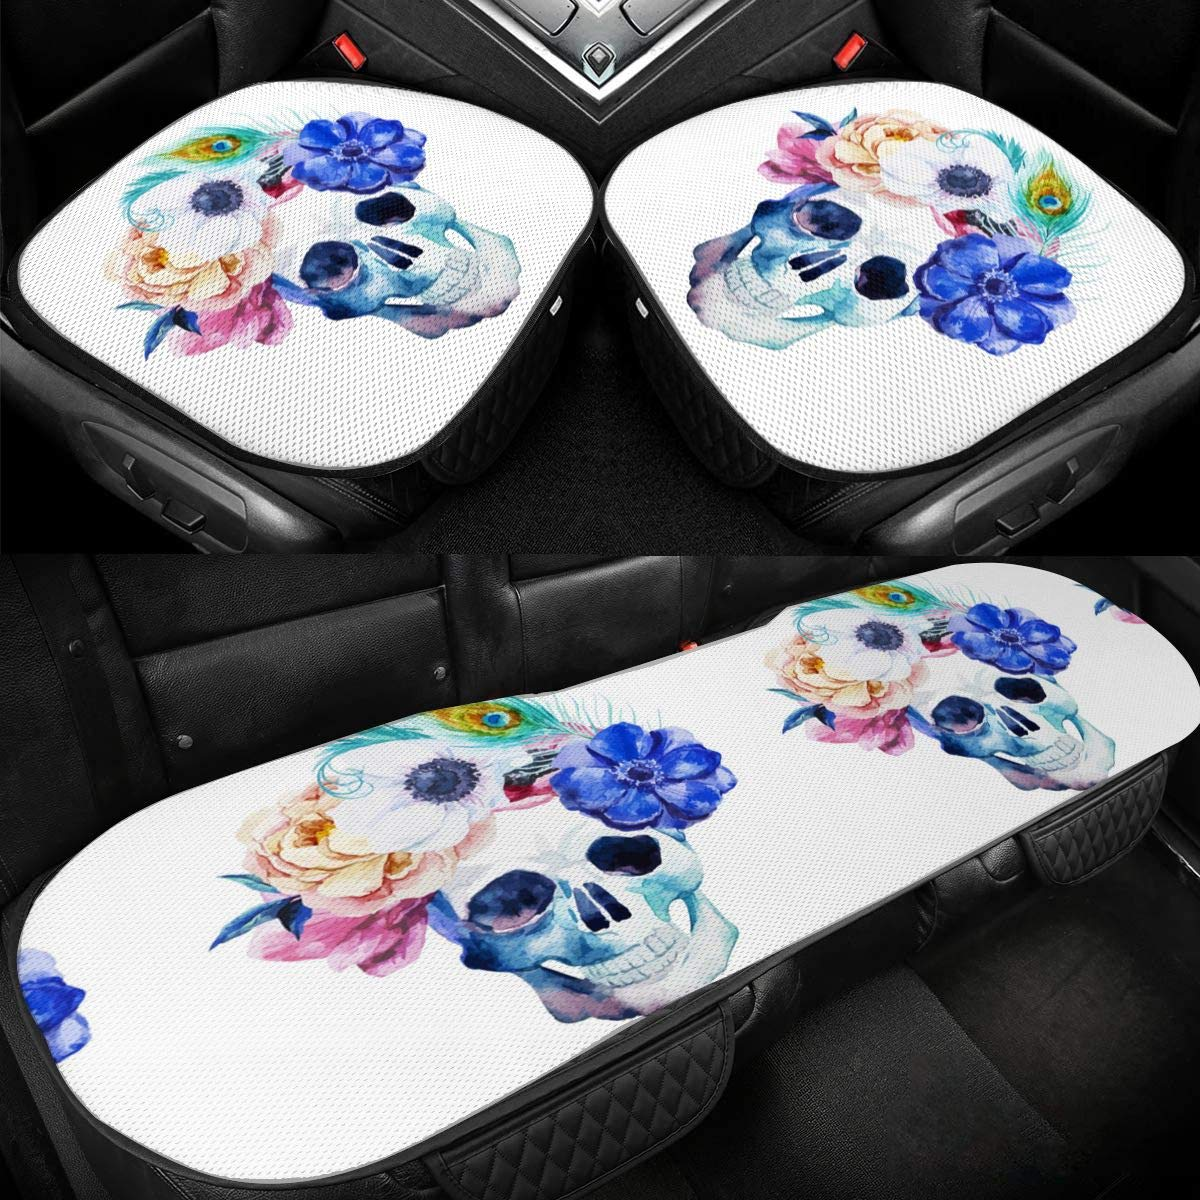 Watercolor Flowers Skull Car Ice Silk Seat Cushion Pad 3 Pieces Sets Comfort Seat Protector for Car Driver Seat Office Chair Home Use Seat Cushion